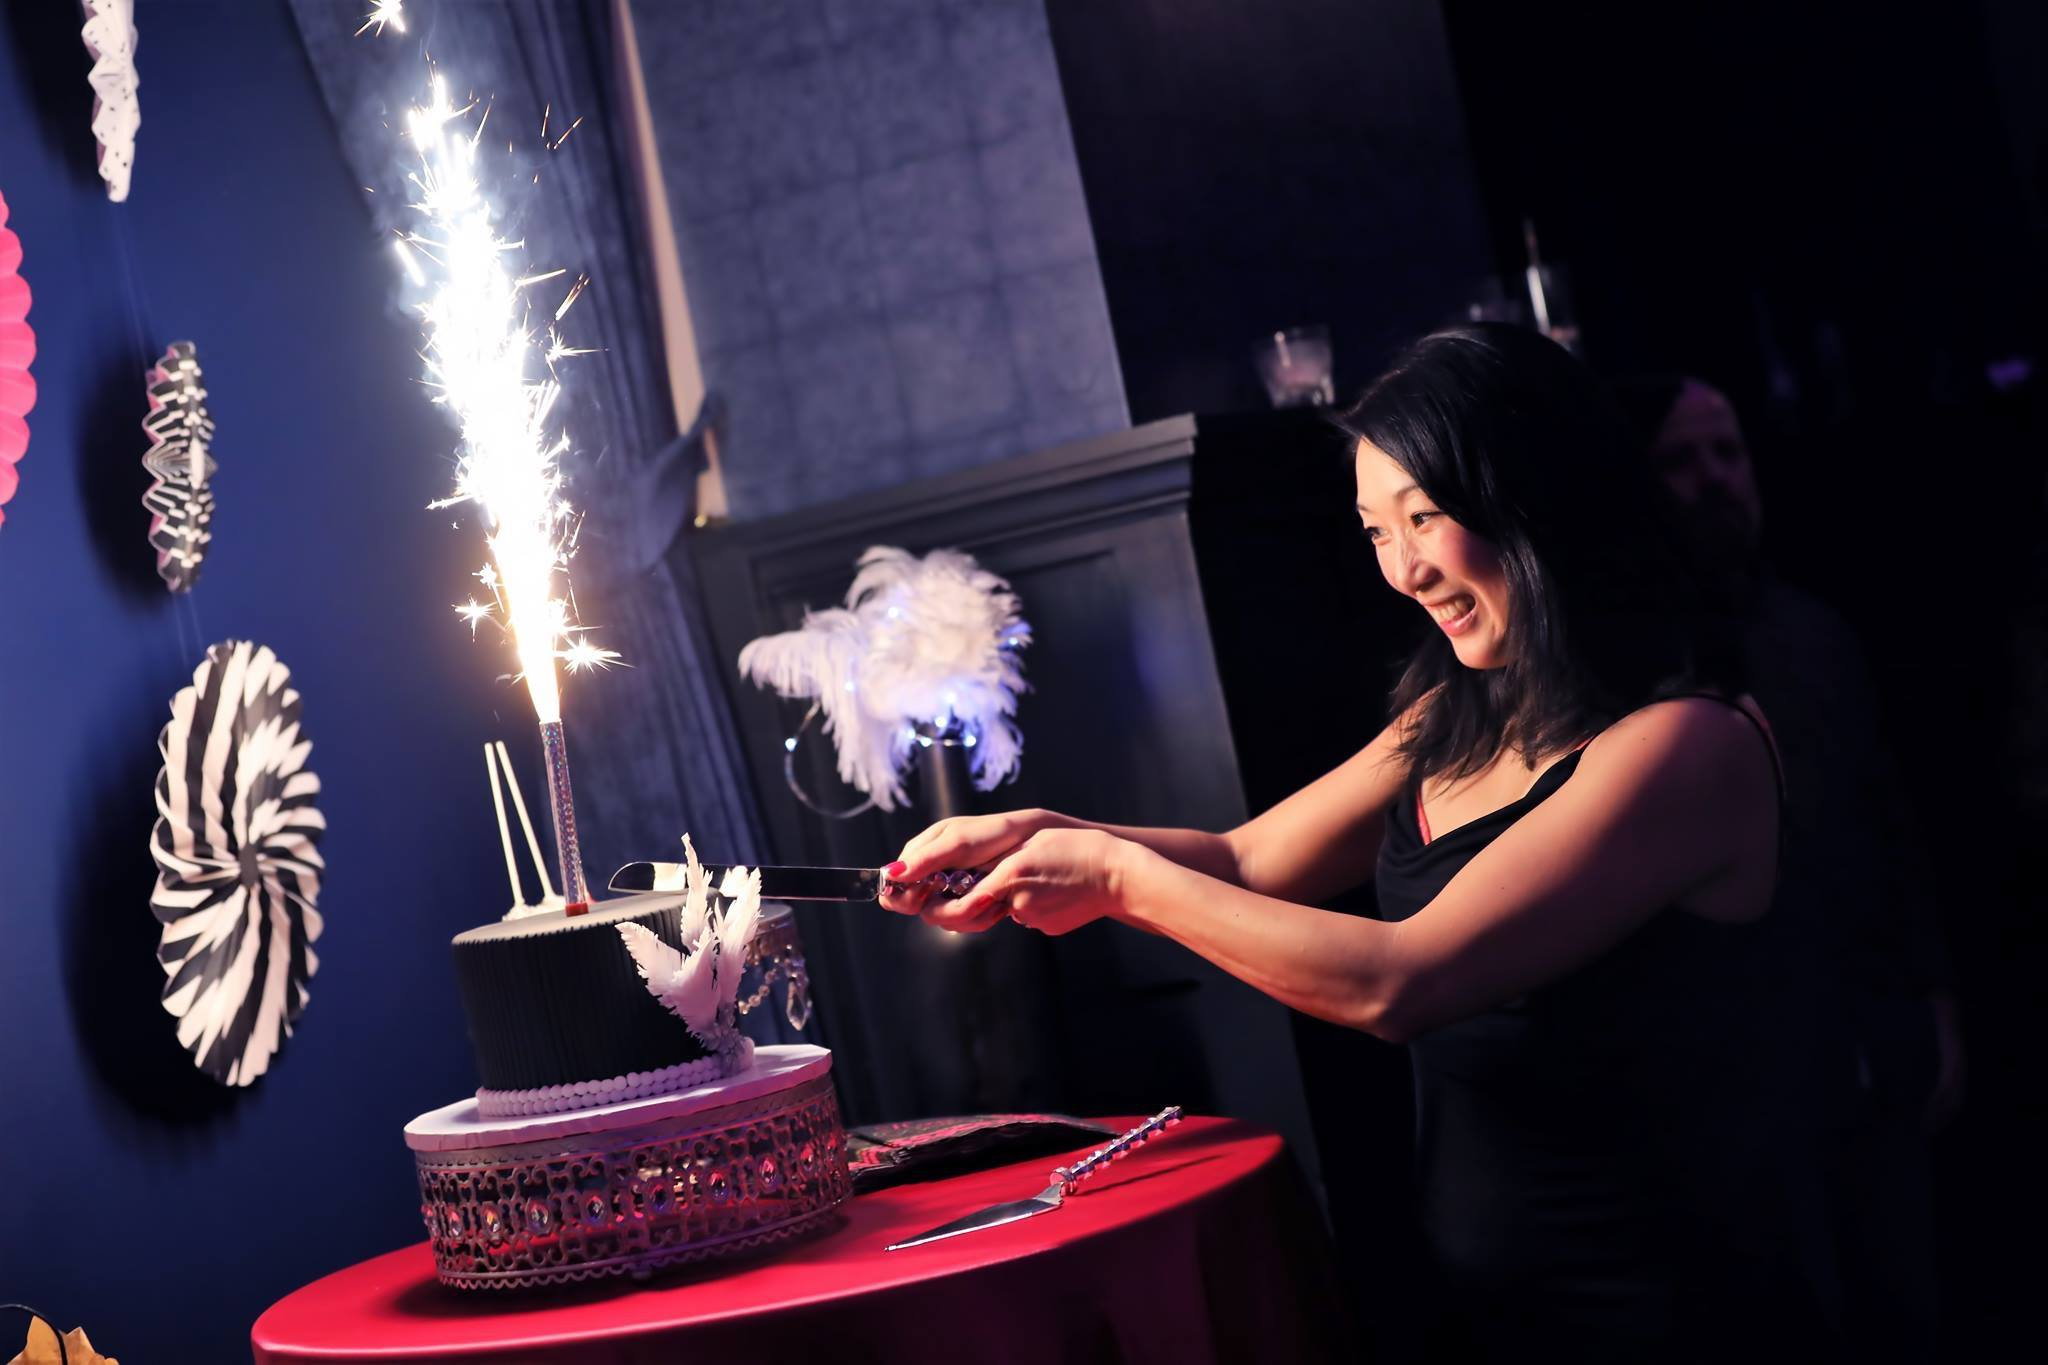 A woman cutting a two-tiered black and purple cake with a sparkler on top of it.